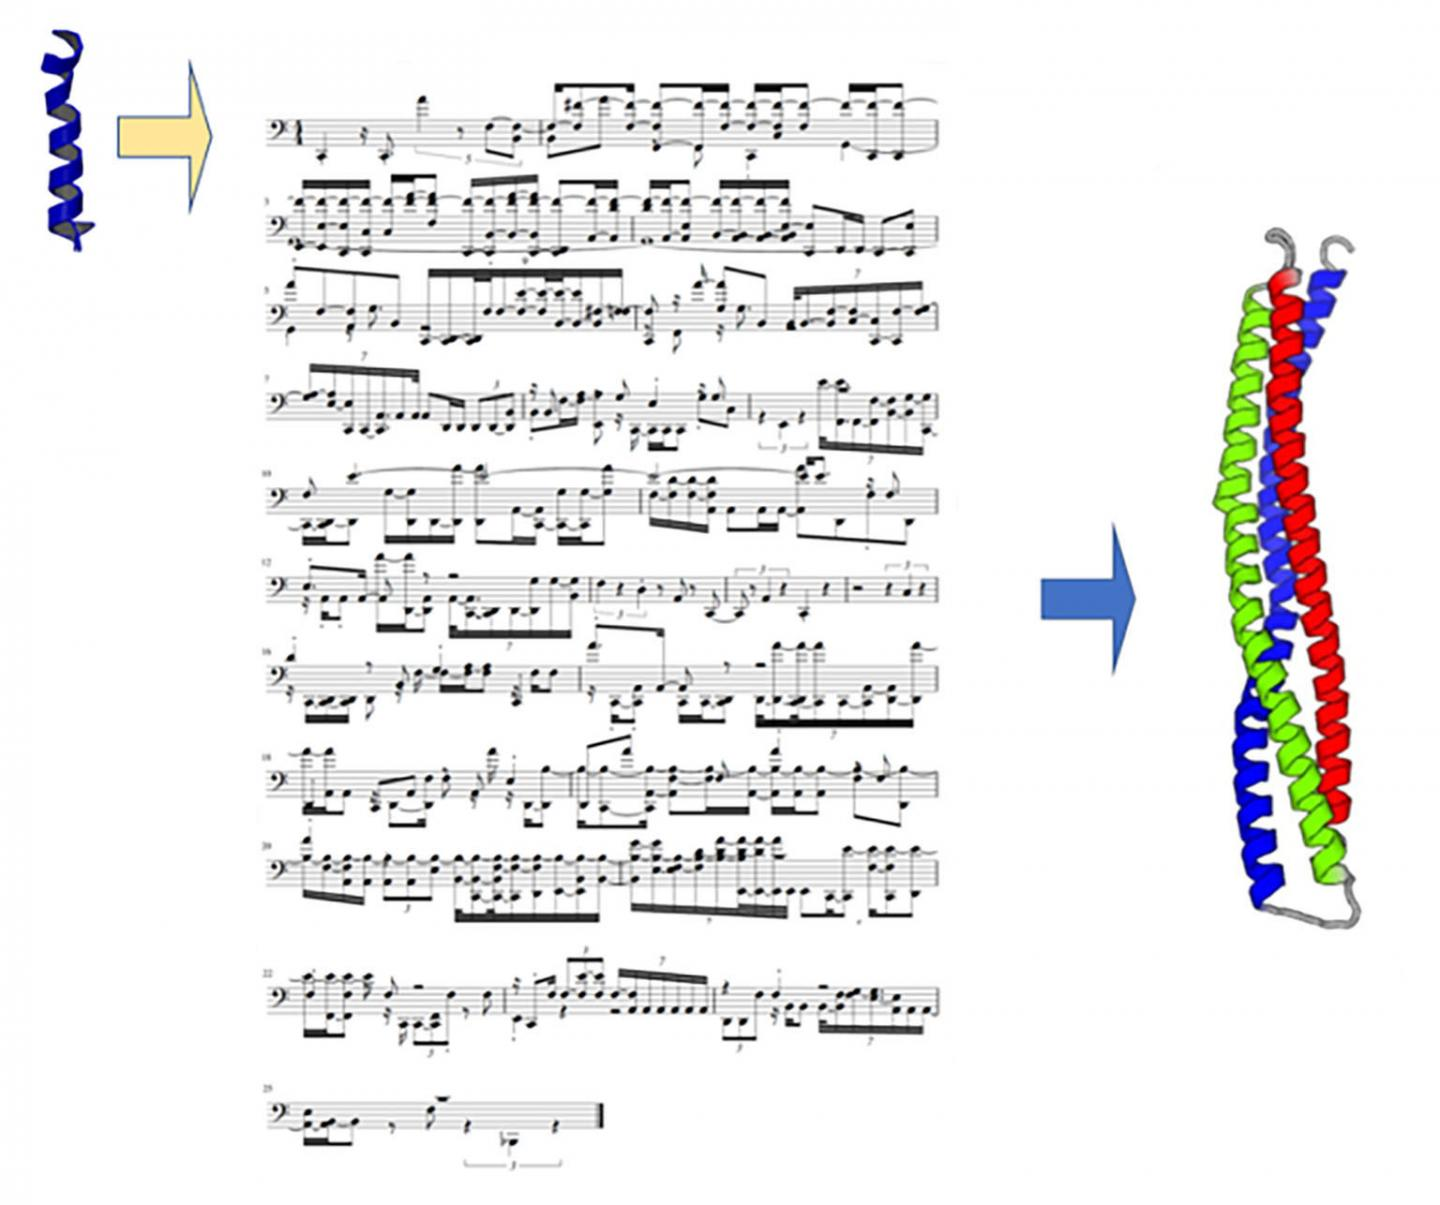 Using Musical Scores to Code the Structure and Folding of Proteins Composed of Amino Acids